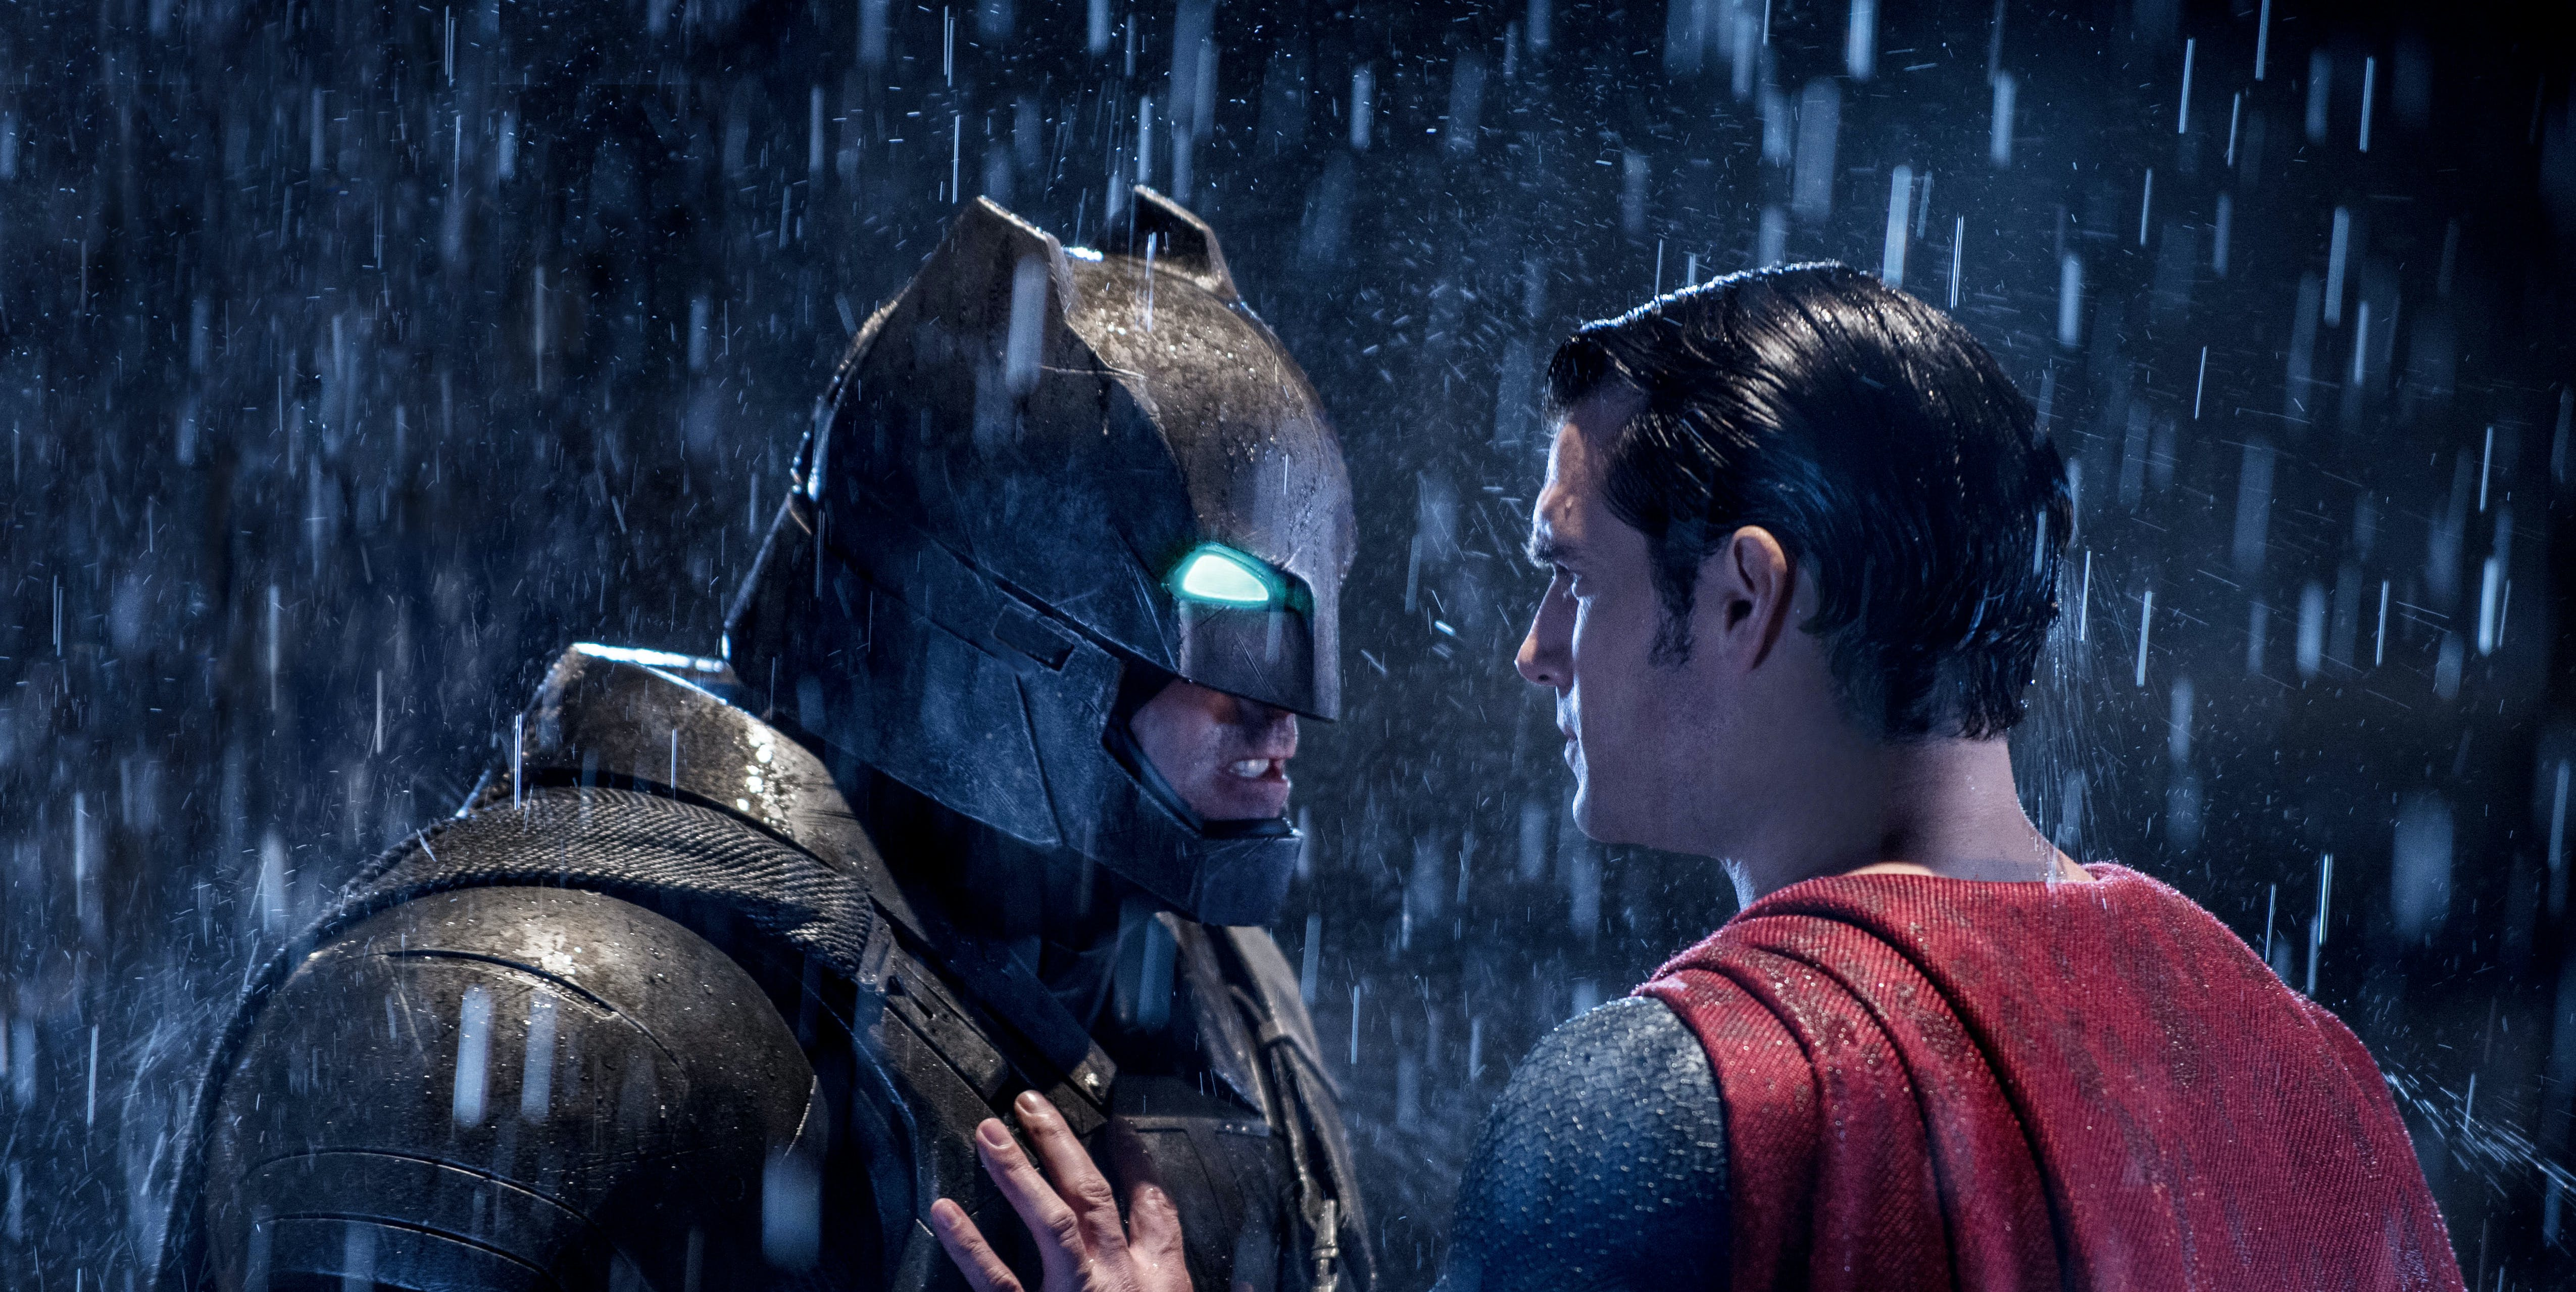 'Batman v Superman' brought back disappointing reviews and numbers last year.